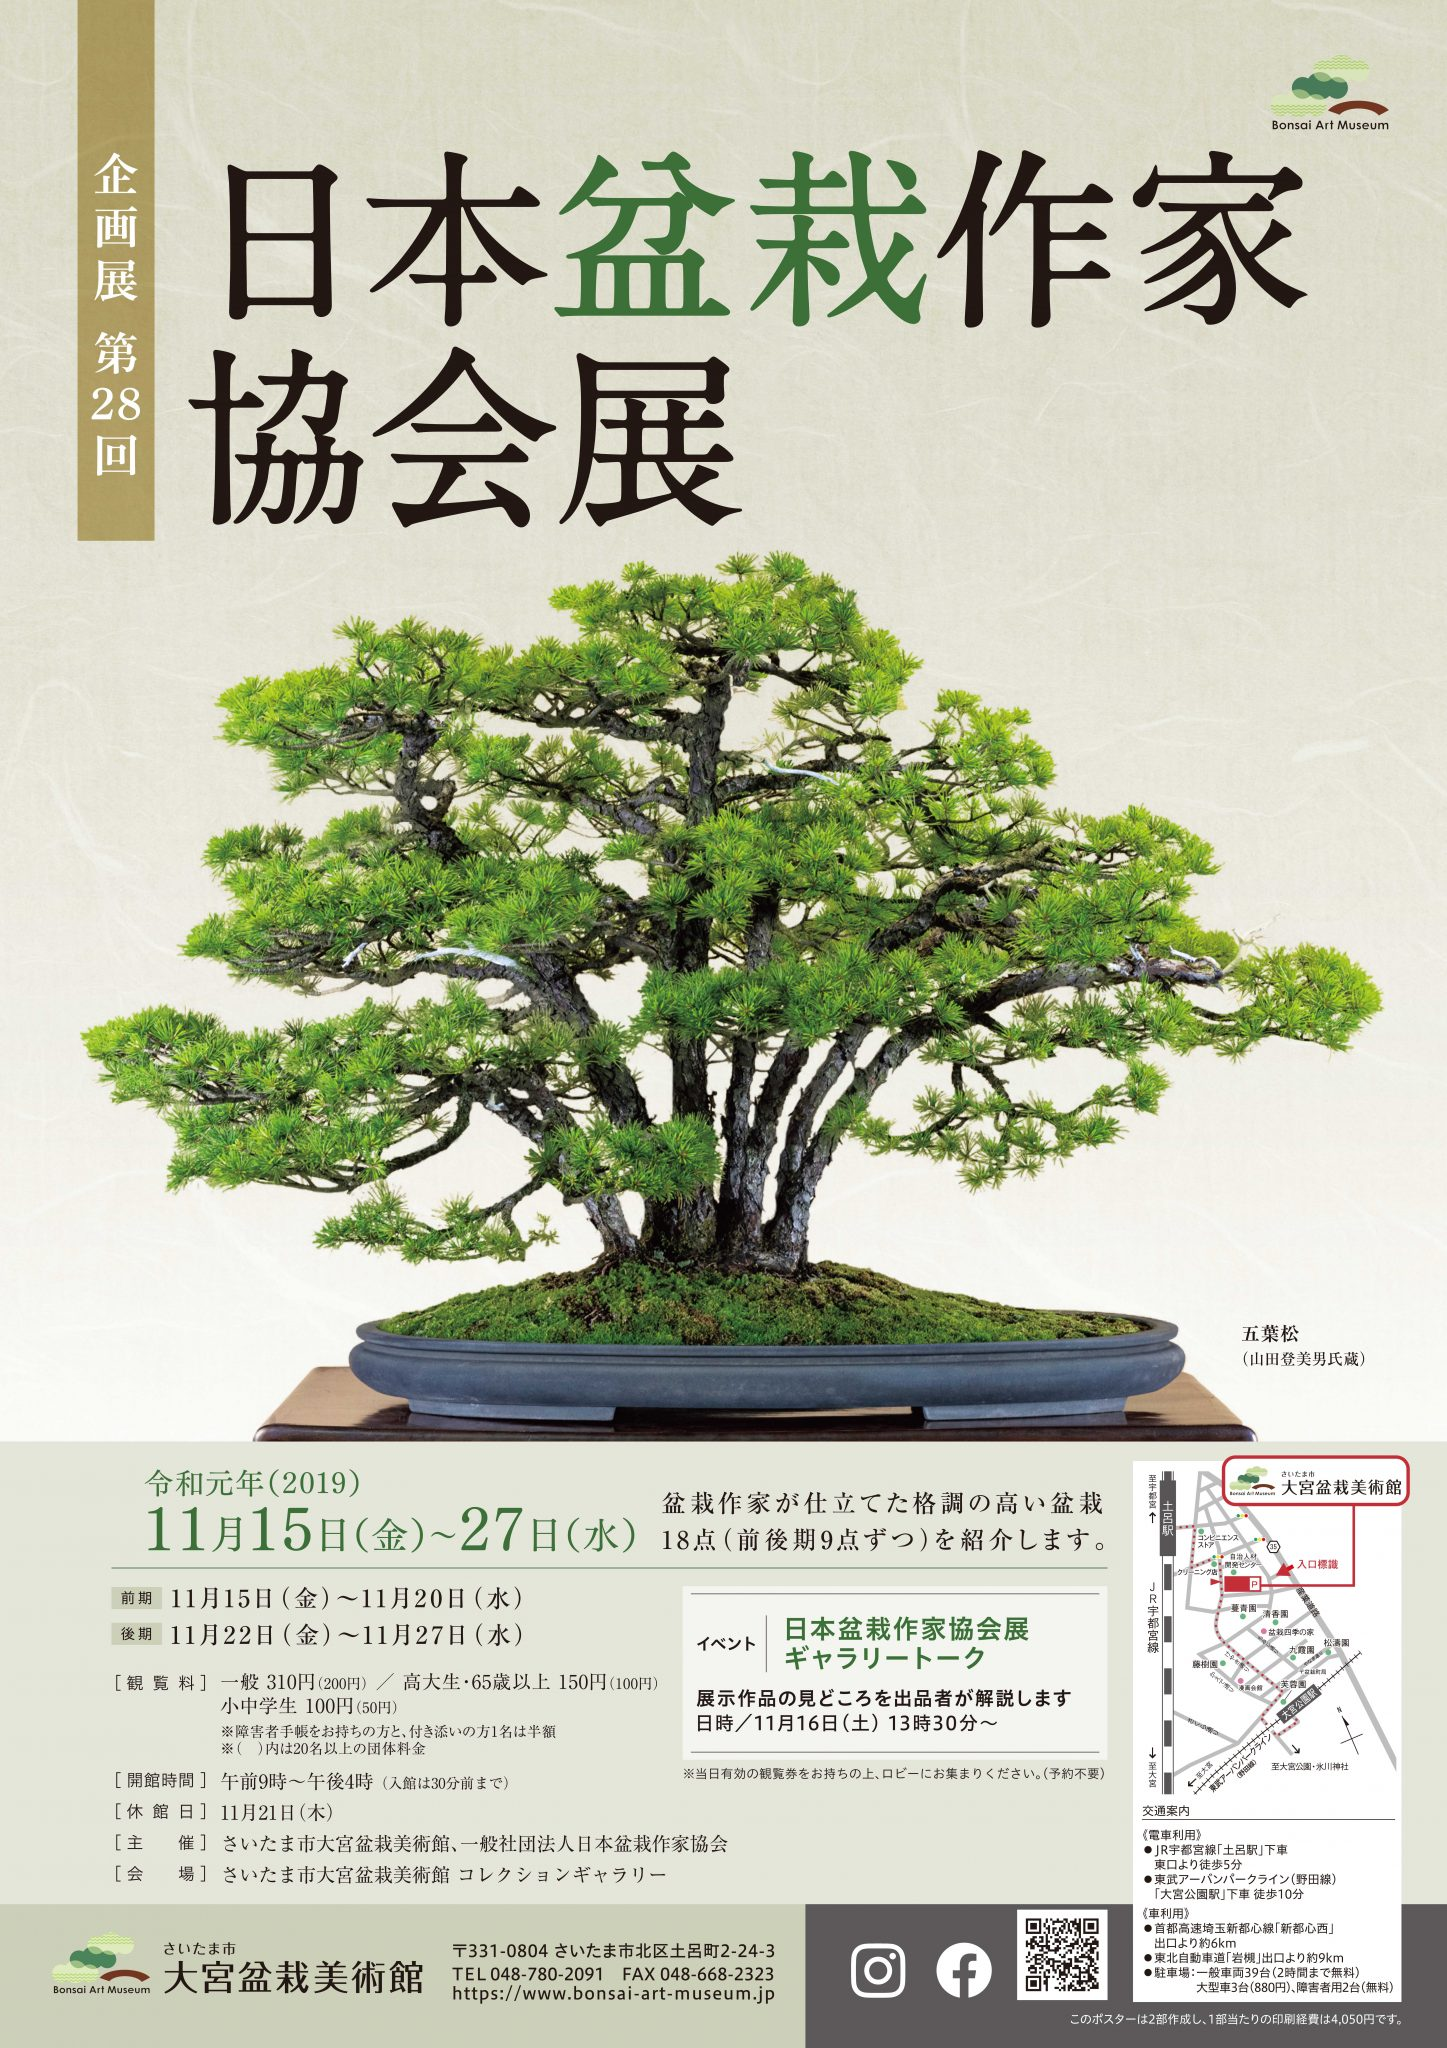 The 28th Japan Bonsai Artists Association Exhibition